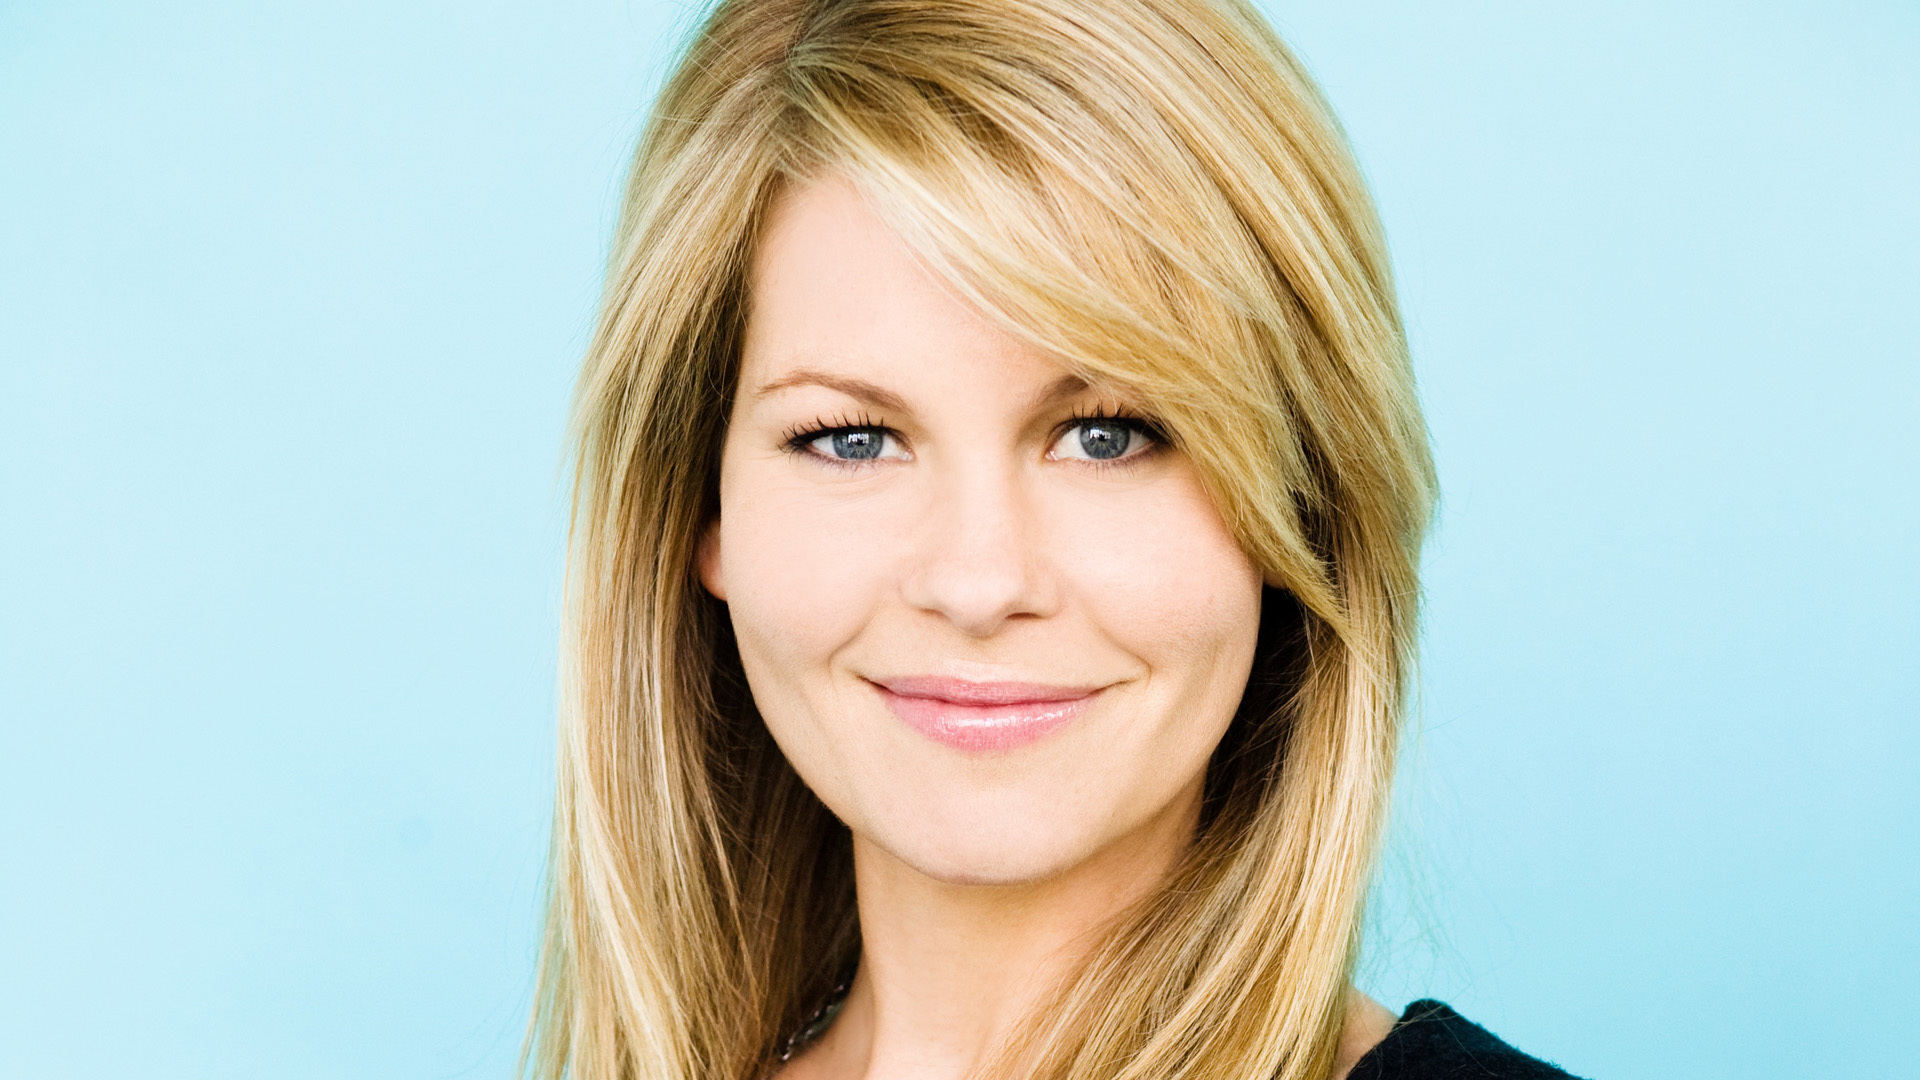 Pictures Of Candace Cameron